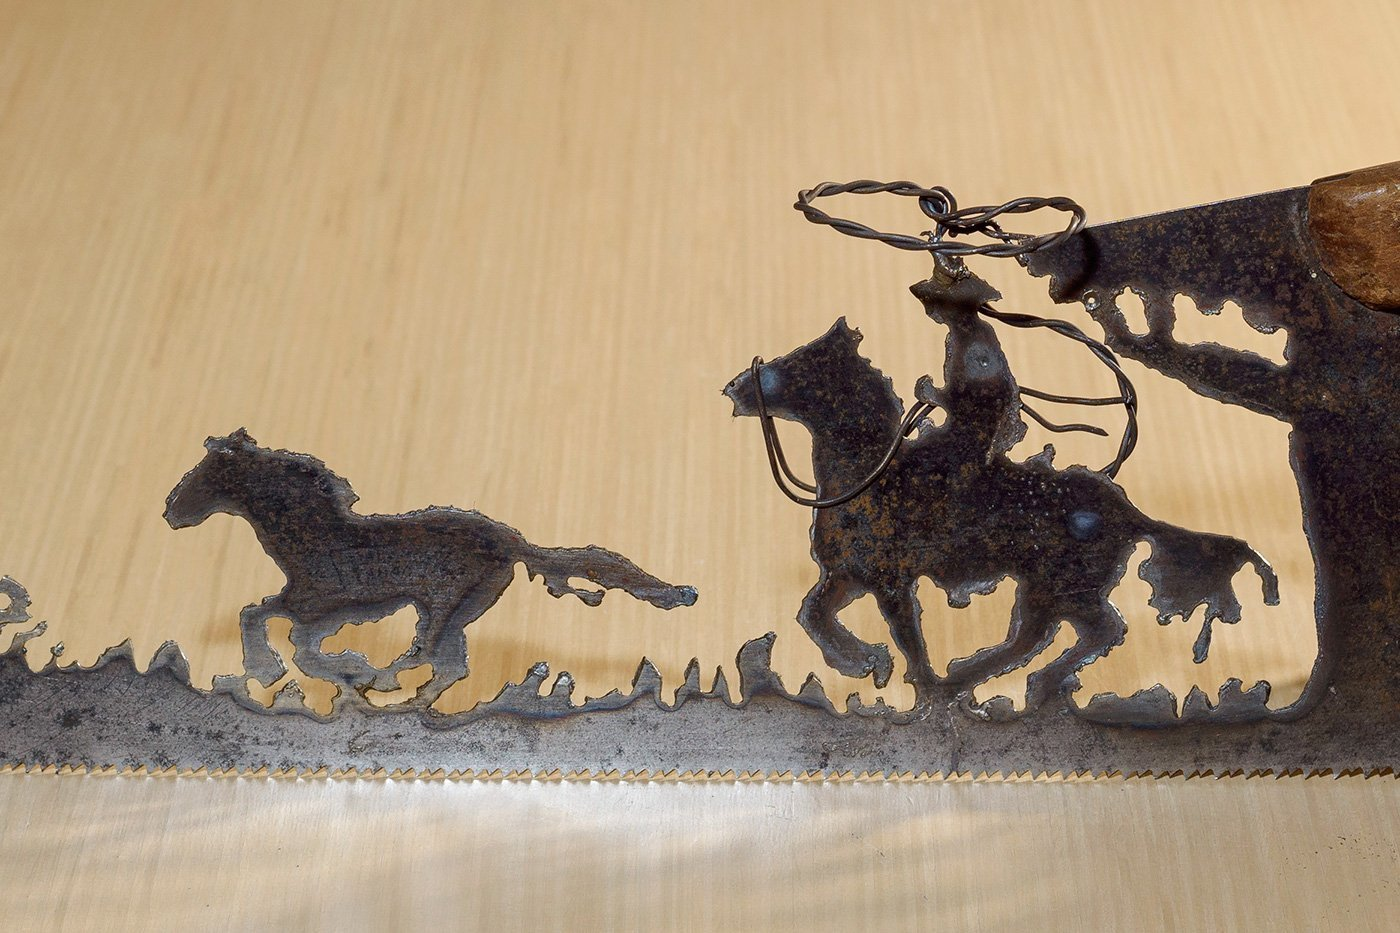 Amazon.com: Metal Art Cowboy or Cowgirl Roper and pony design - Hand ...